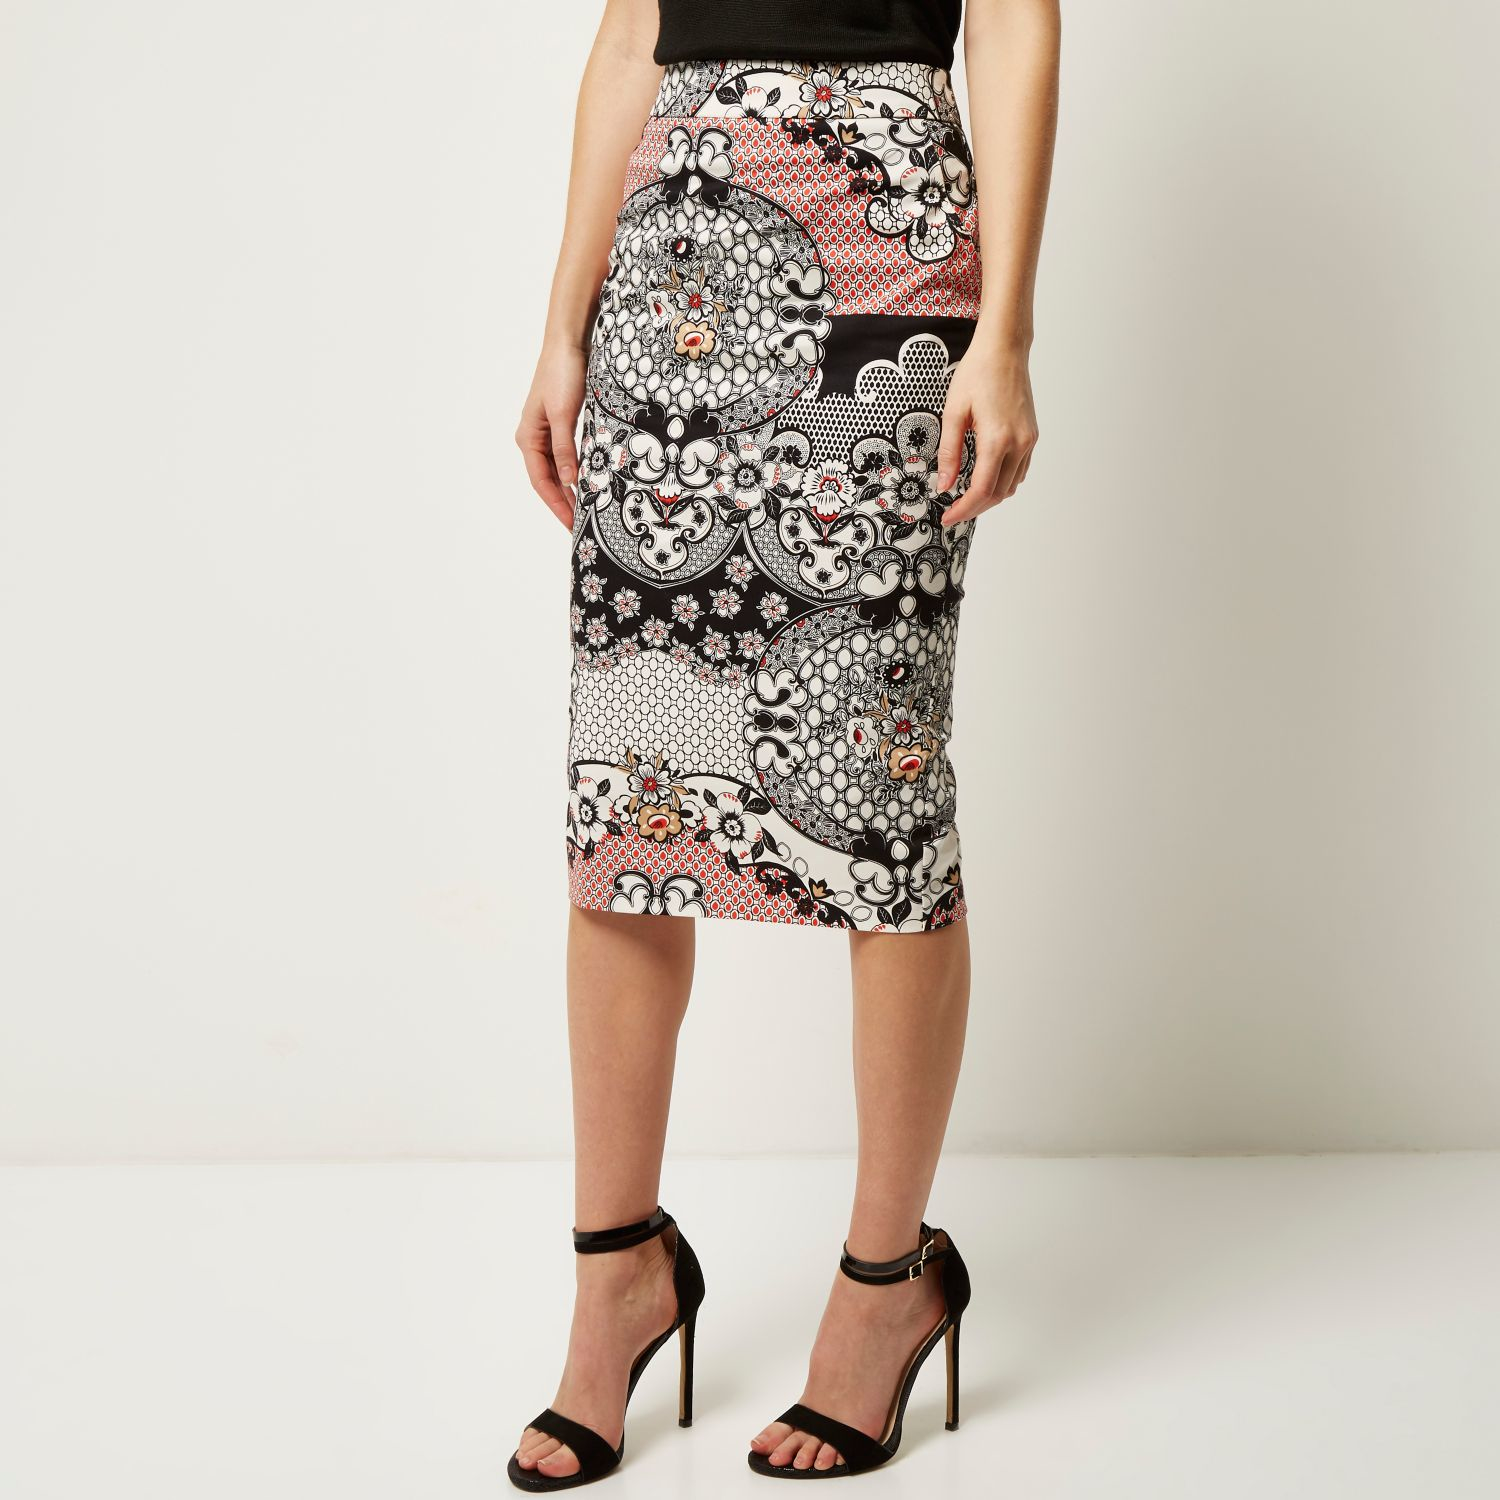 River island Red Floral Print Pencil Skirt in Red | Lyst